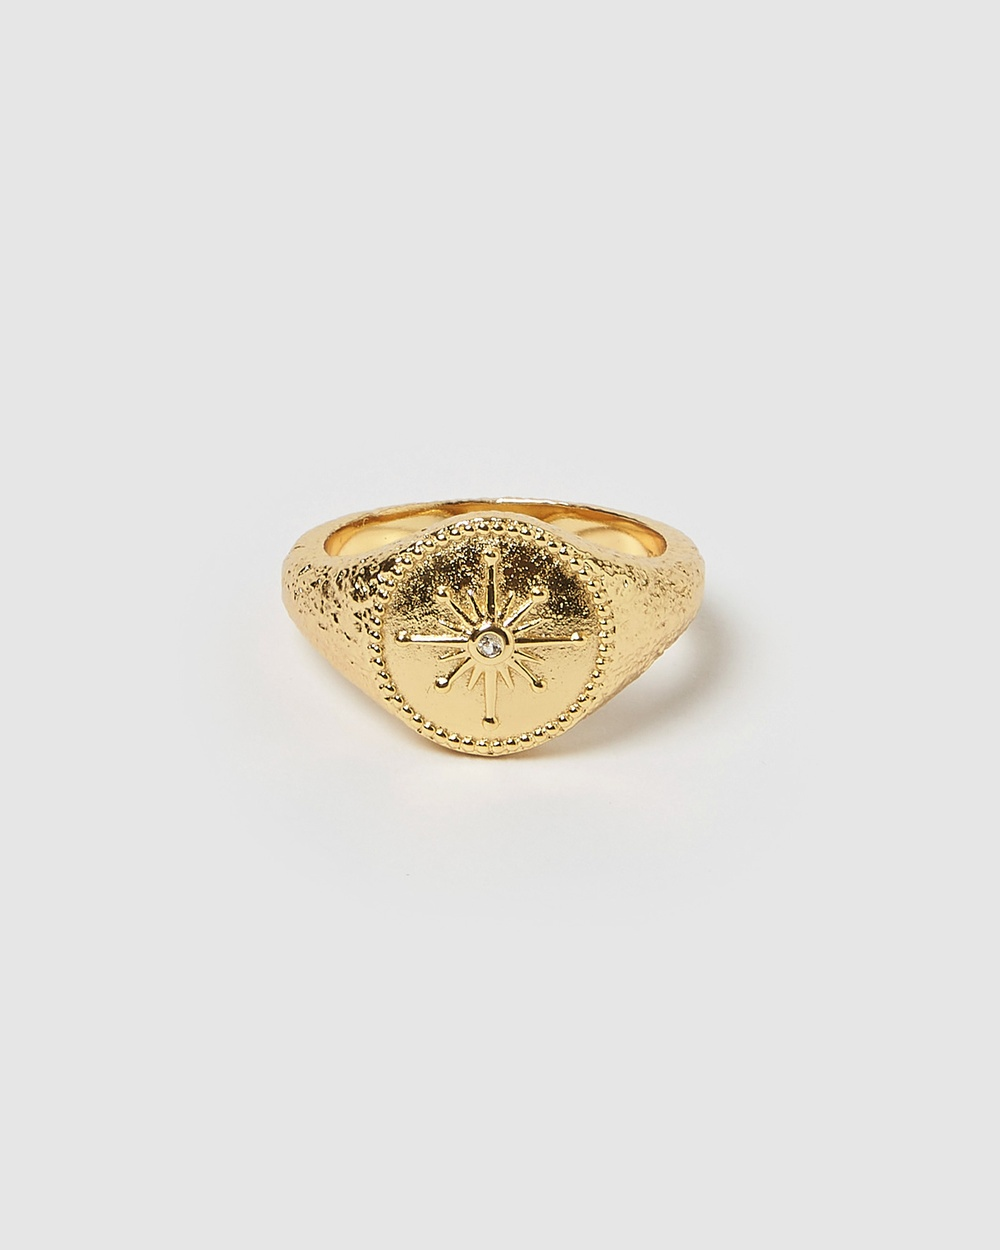 Arms Of Eve Wandering Star Gold Signet Ring Jewellery Gold